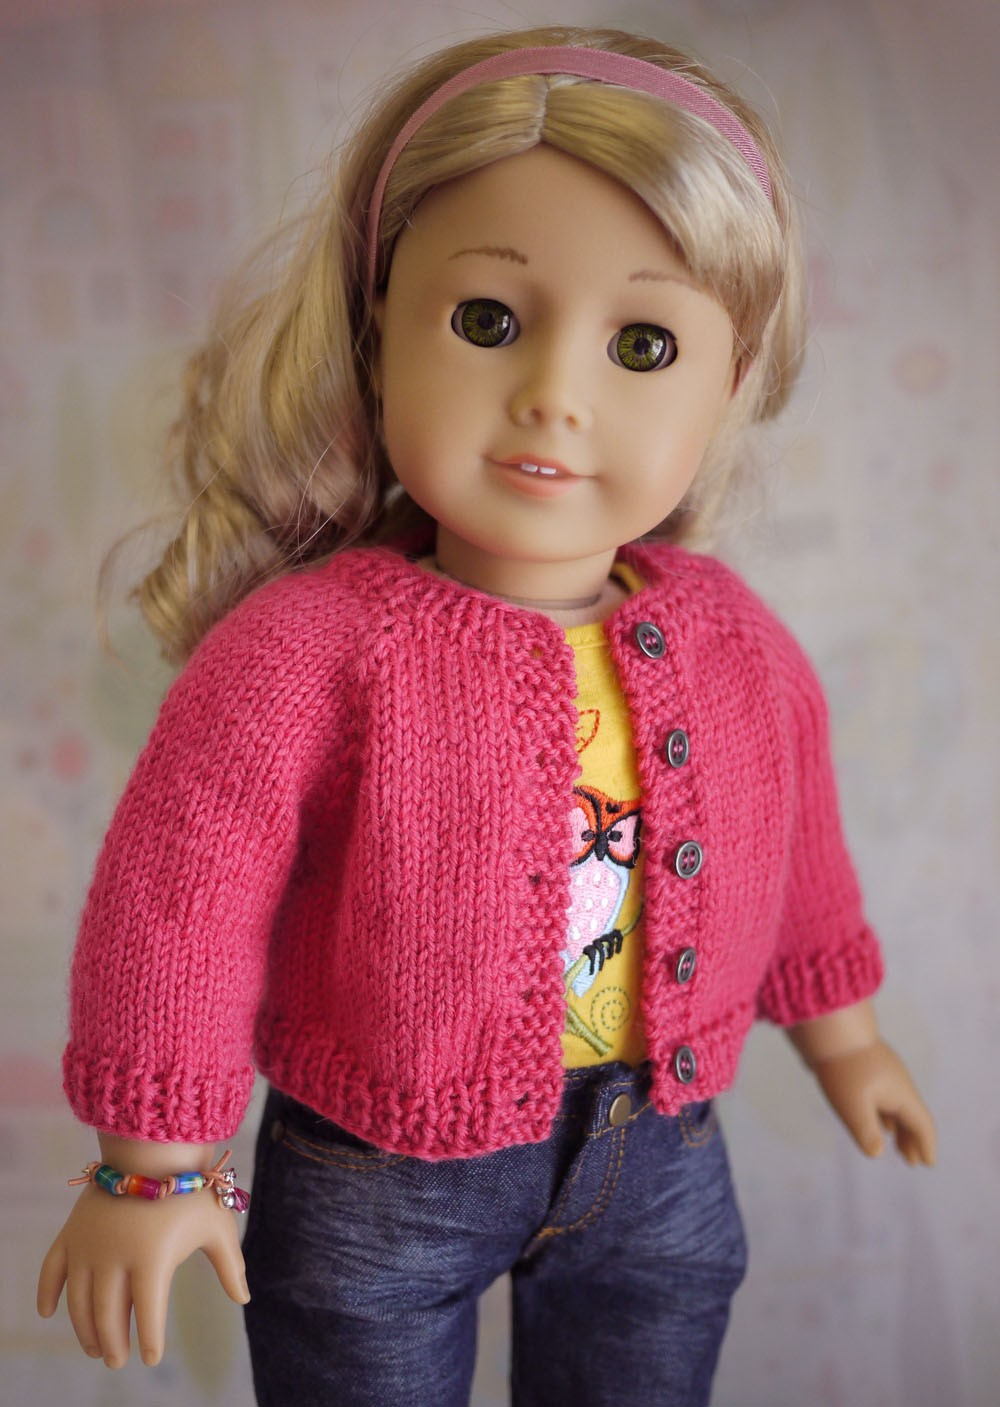 Free Knitting Pattern For Poncho For American Girl Doll : Knitting Patterns for American Girl Dolls A Knitting Blog